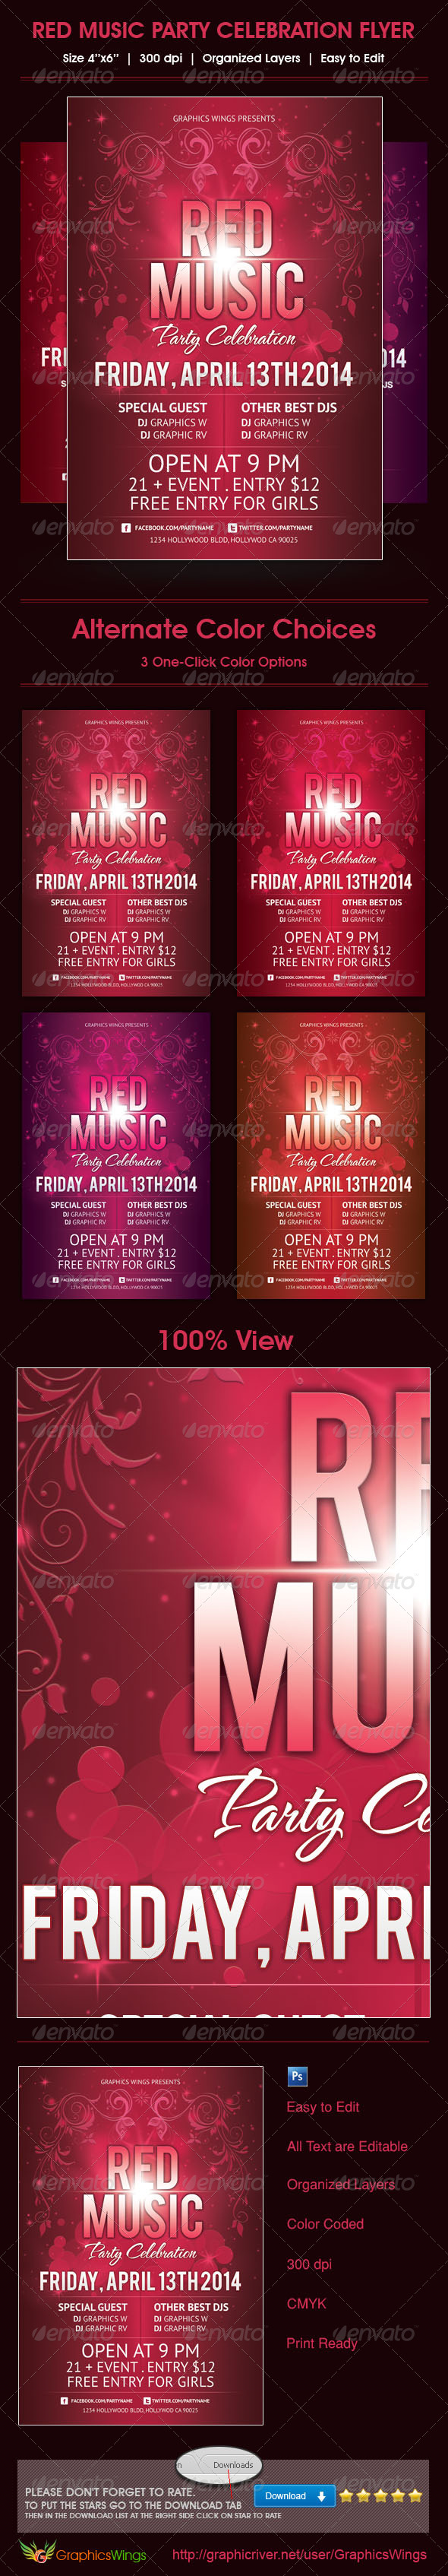 GraphicRiver Red Music Party Celebration Flyer Template 4698216